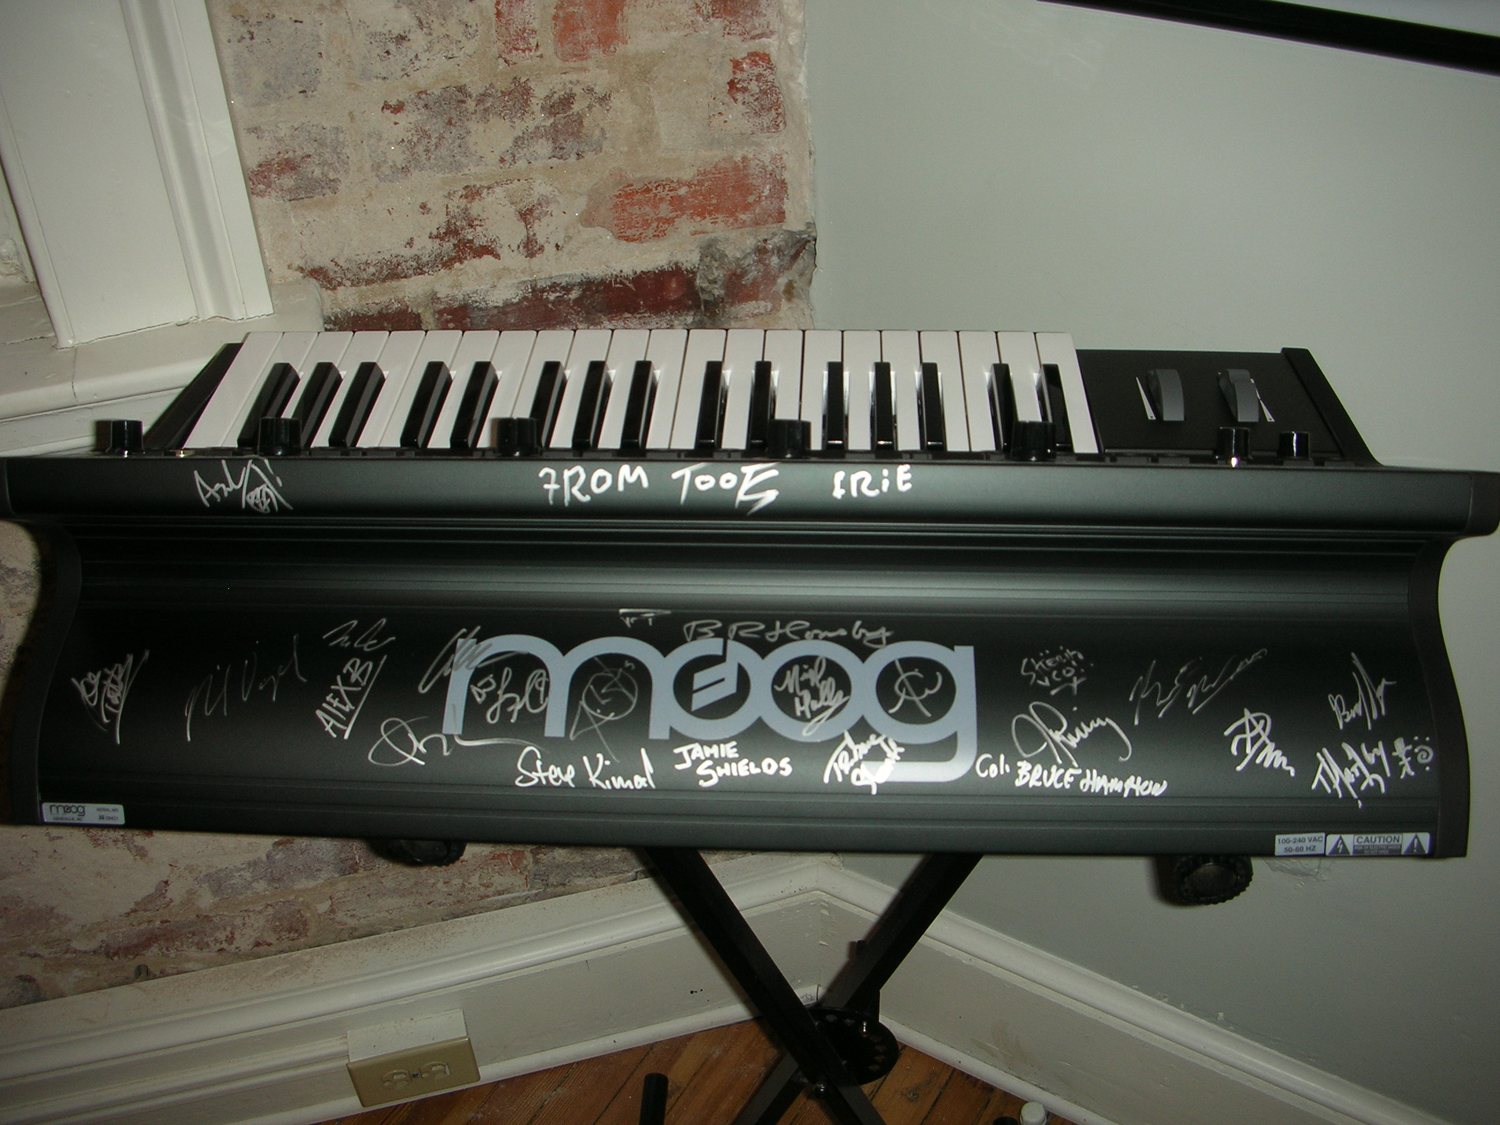 Place your bids now on a Little Phatty signed by Jam Cruise 10 artists including Bruce Hornsby and John Oates